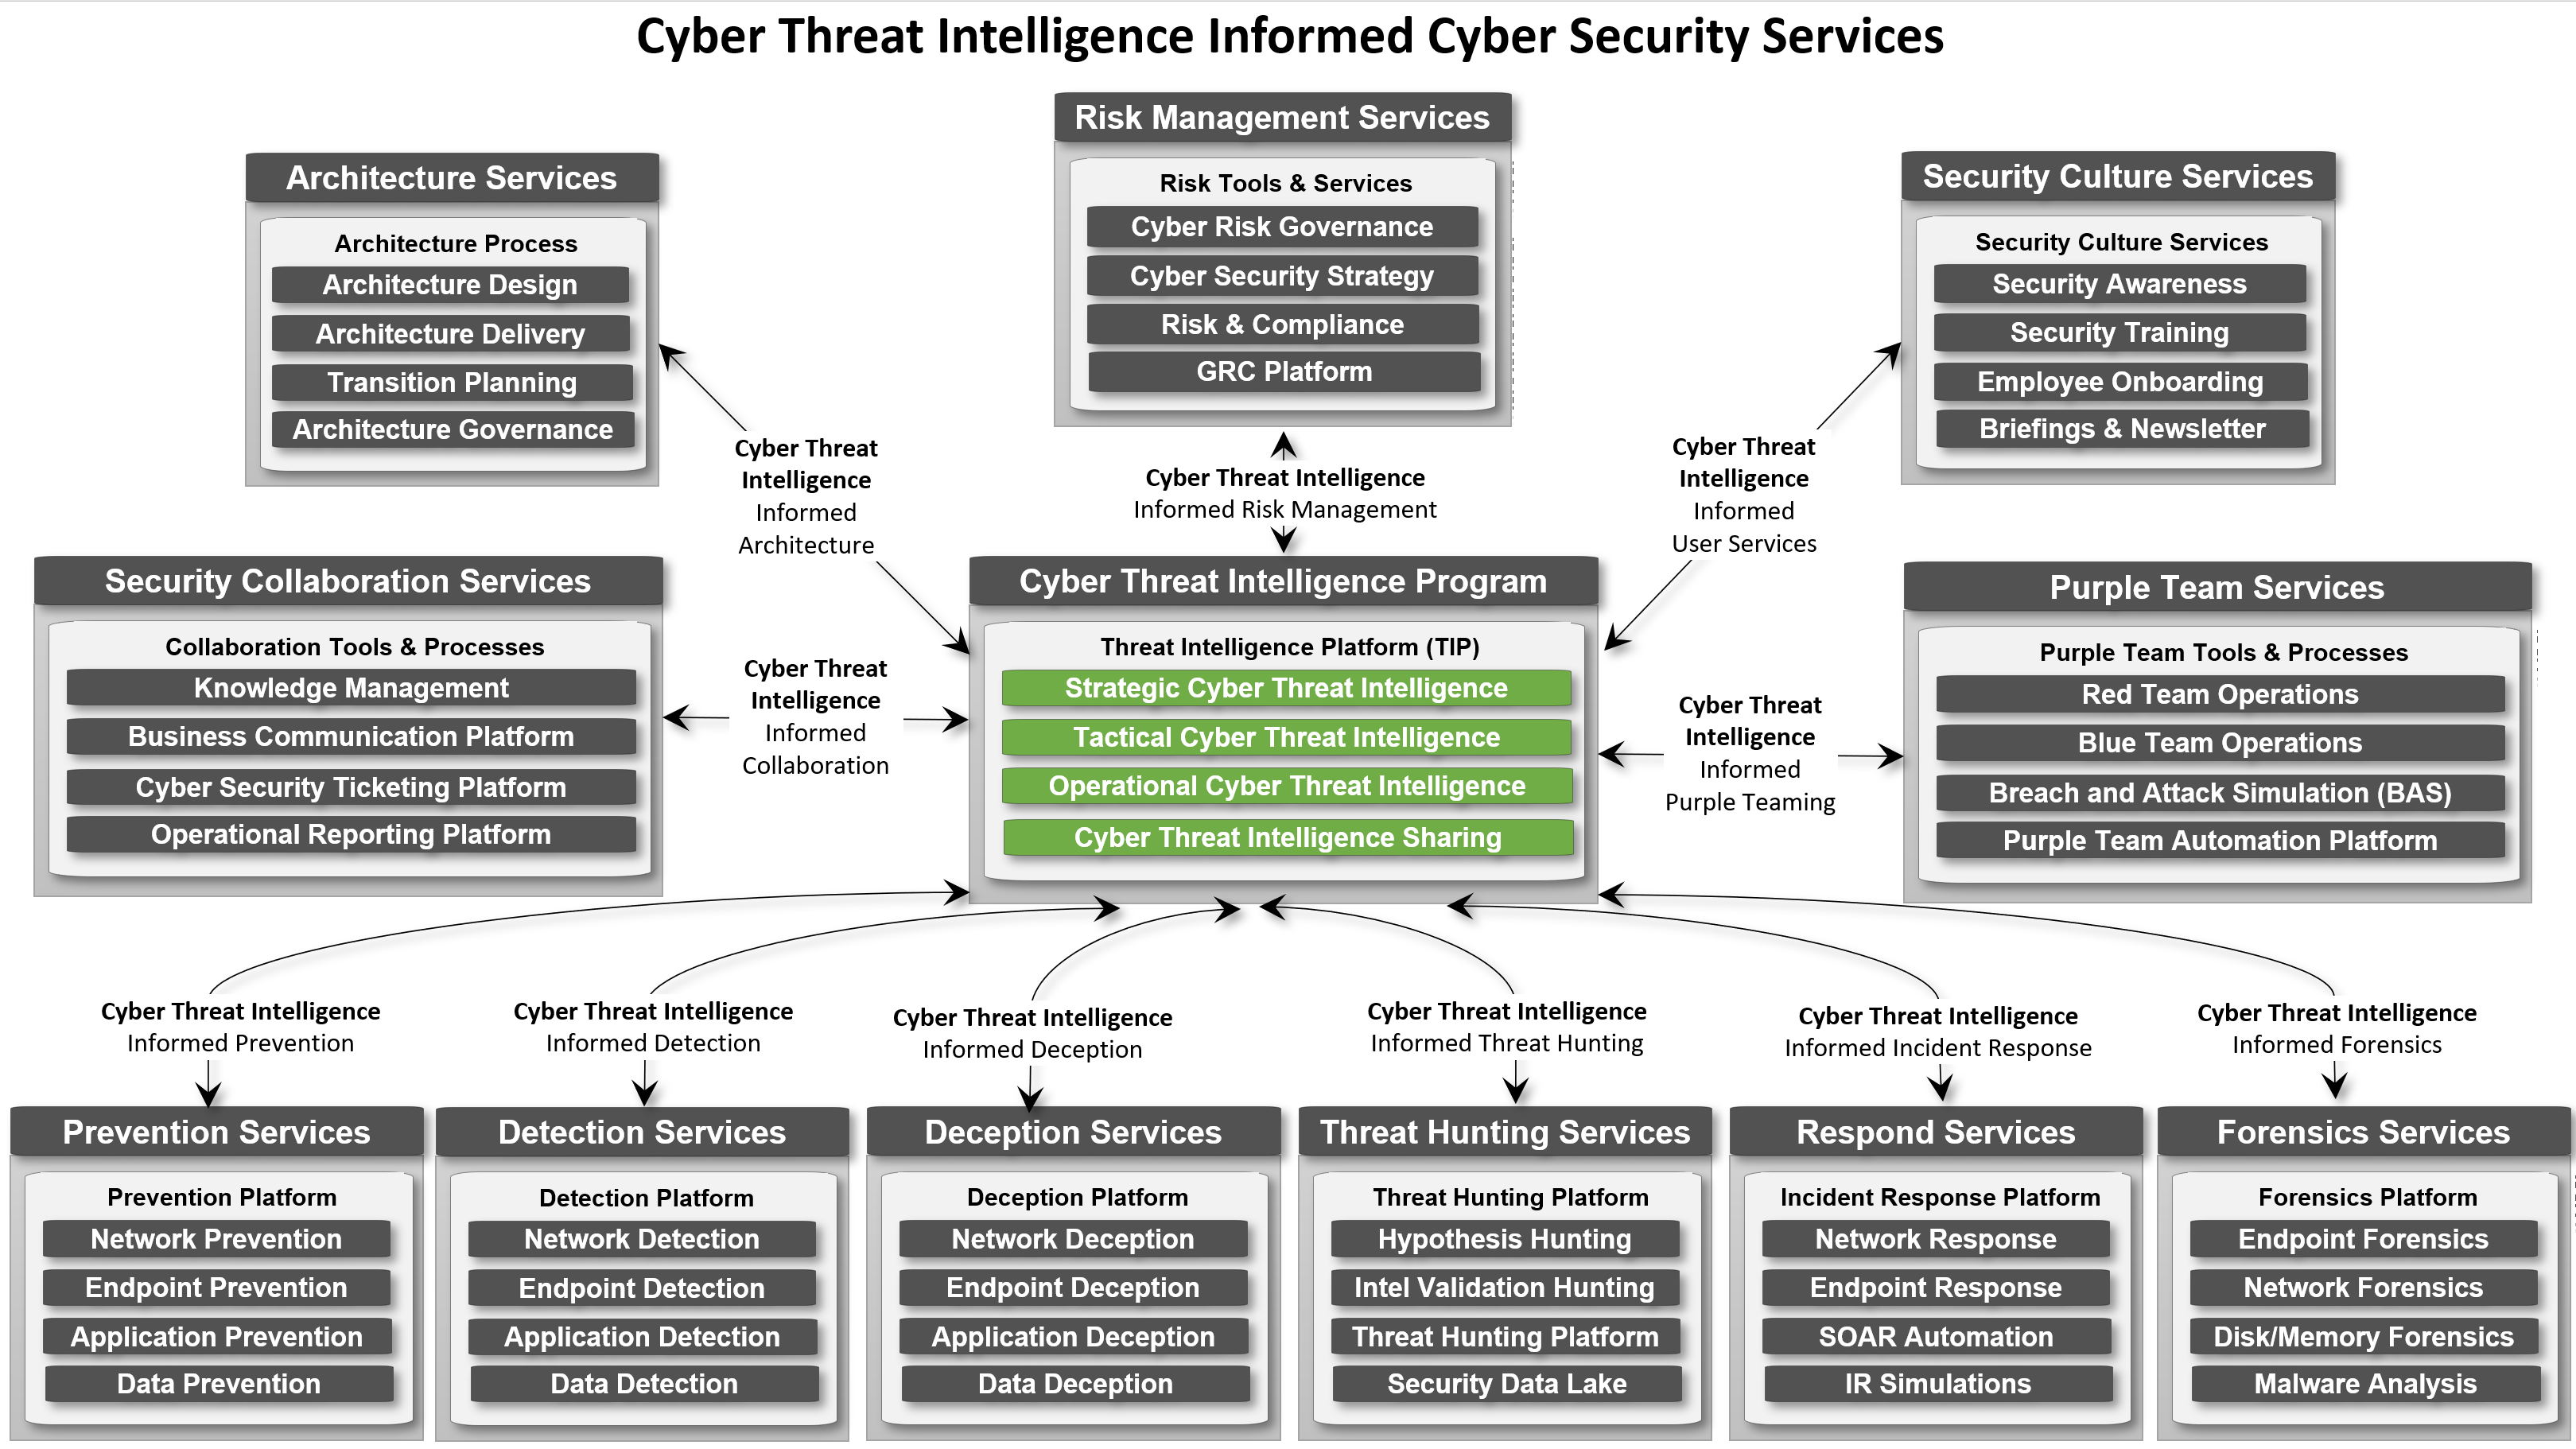 Cyber Threat Intelligence Program-Informed Services Overview